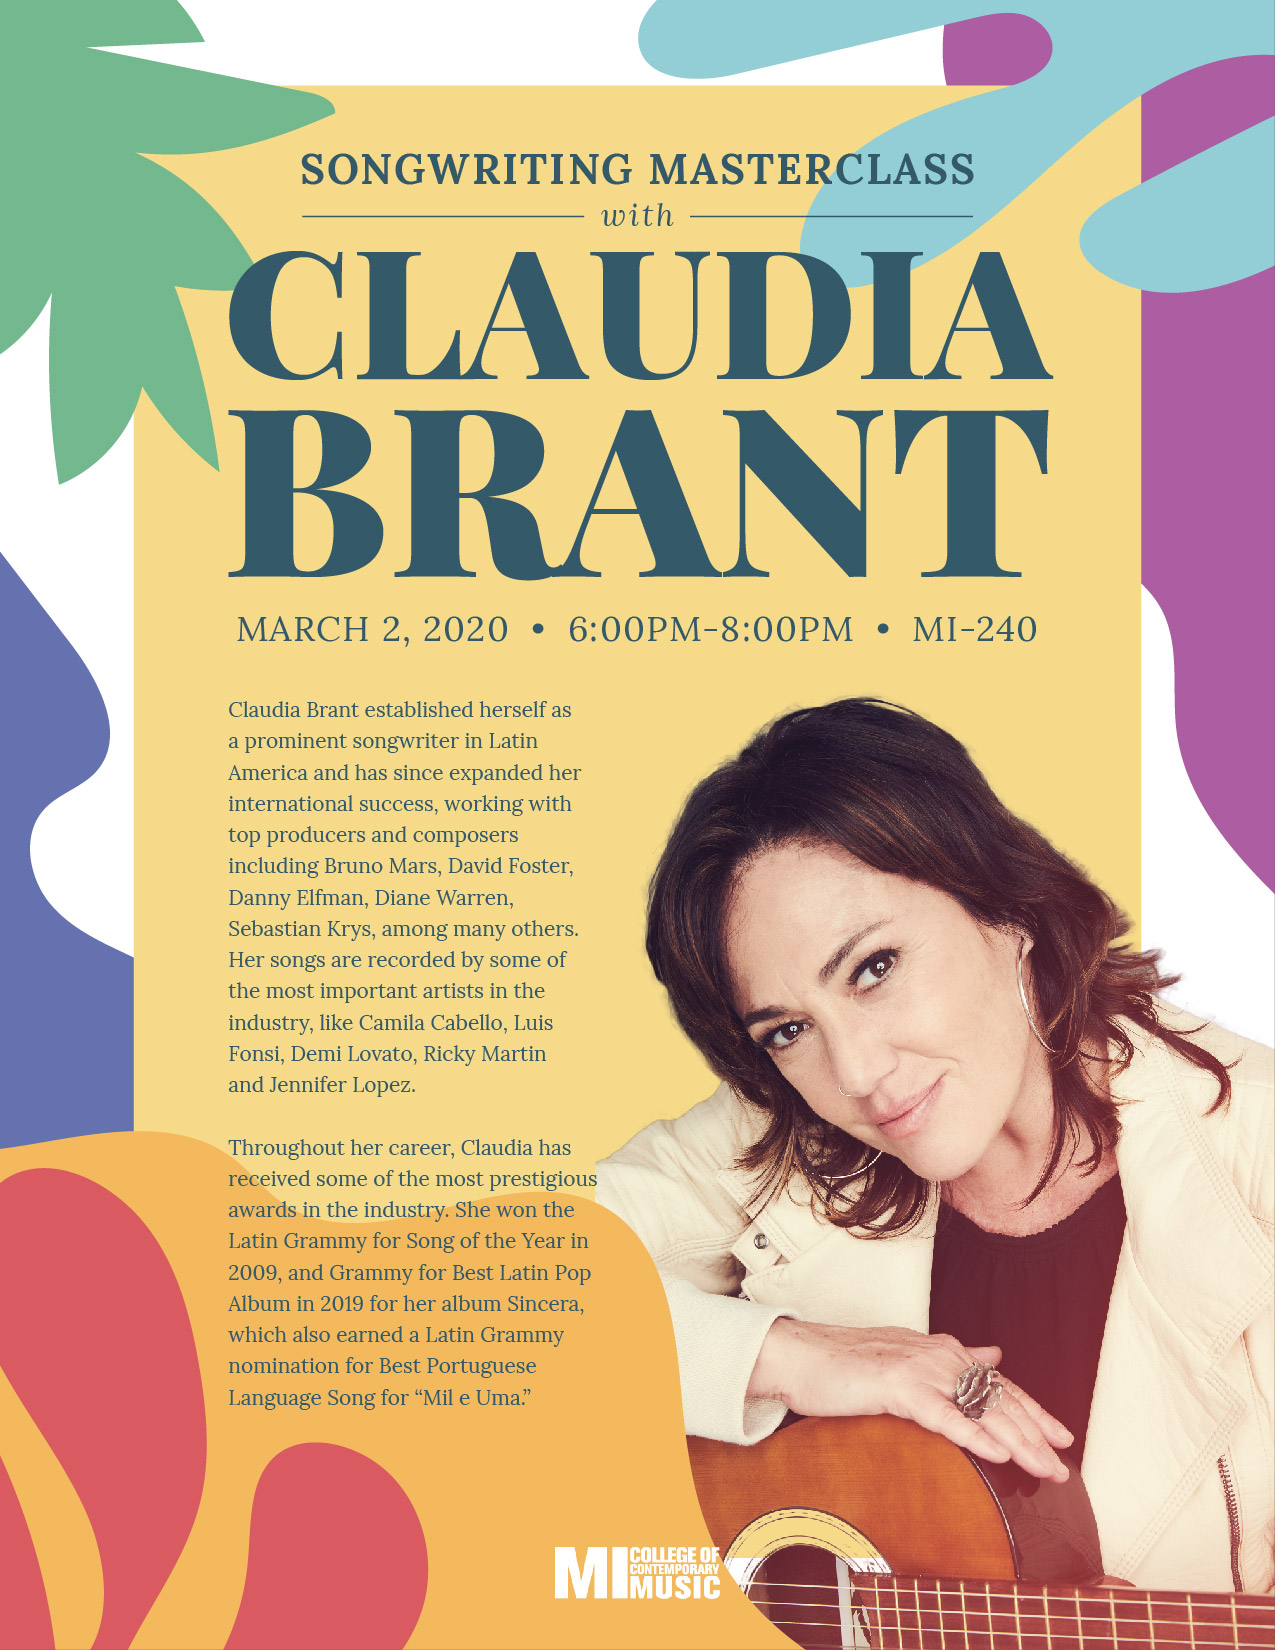 Songwriting Masterclass with Claudia Brant